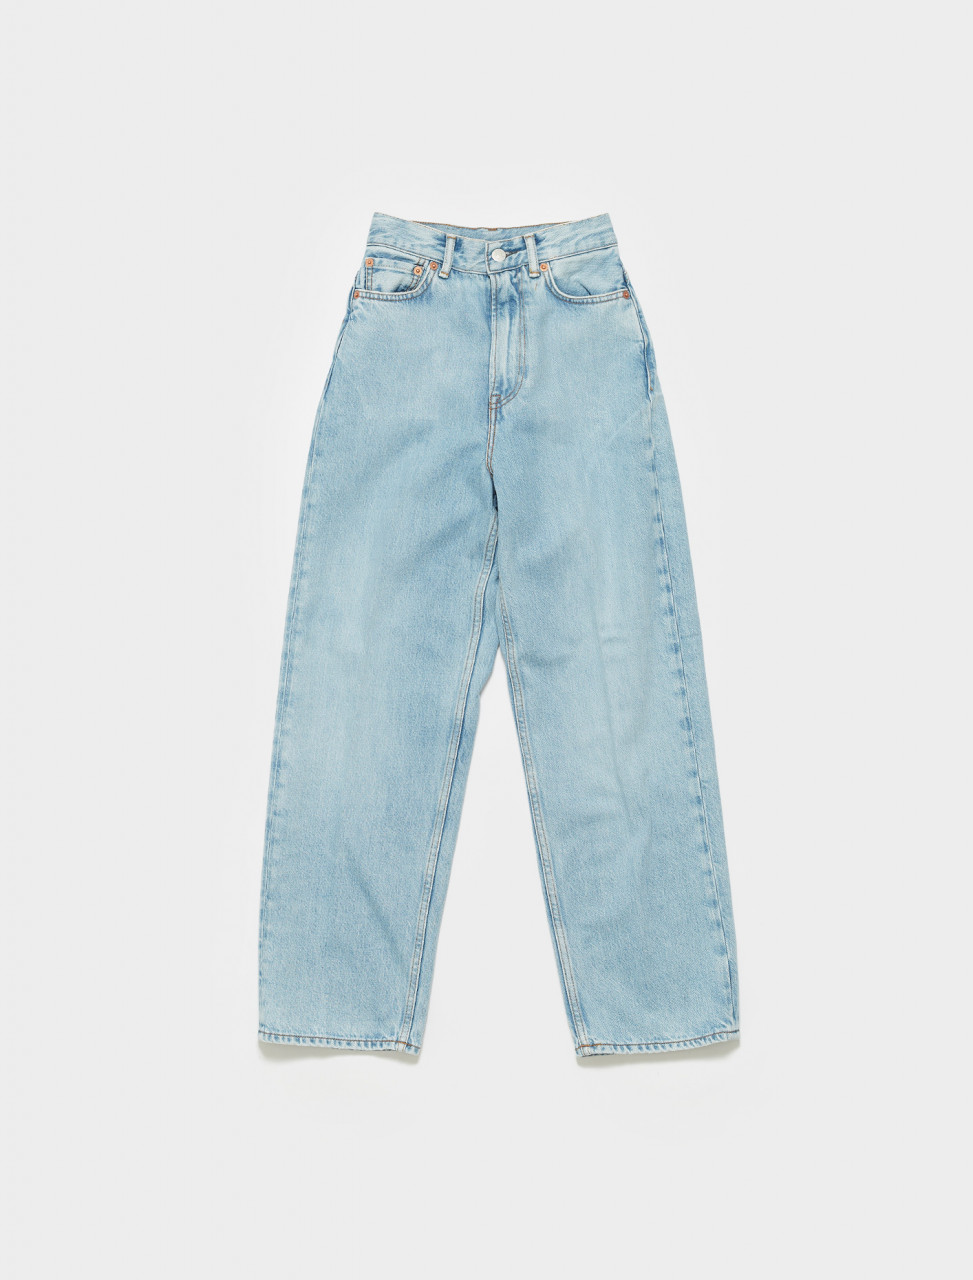 A00280-228 ACNE STUDIOS 1993 SUMMER BLUE JEANS IN LIGHT BLUE